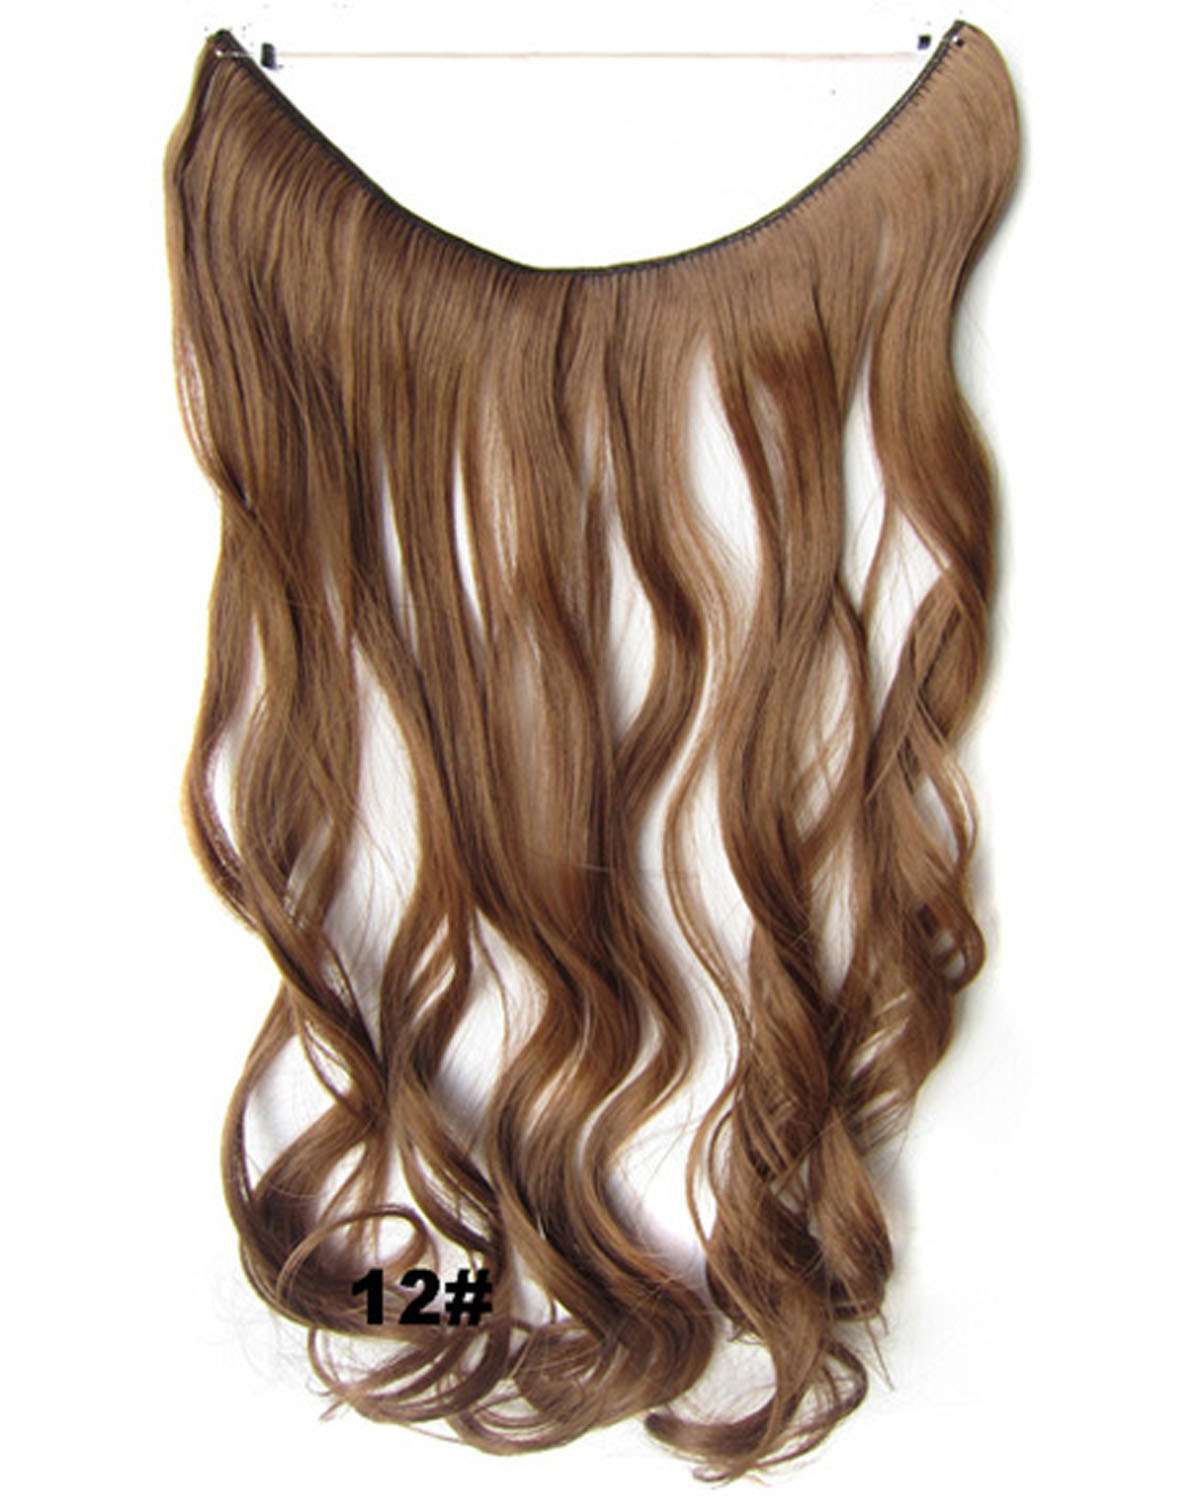 22 Inch Stylish Curly and Long One Piece Miracle Wire Flip in Synthetic Hair Extension12#